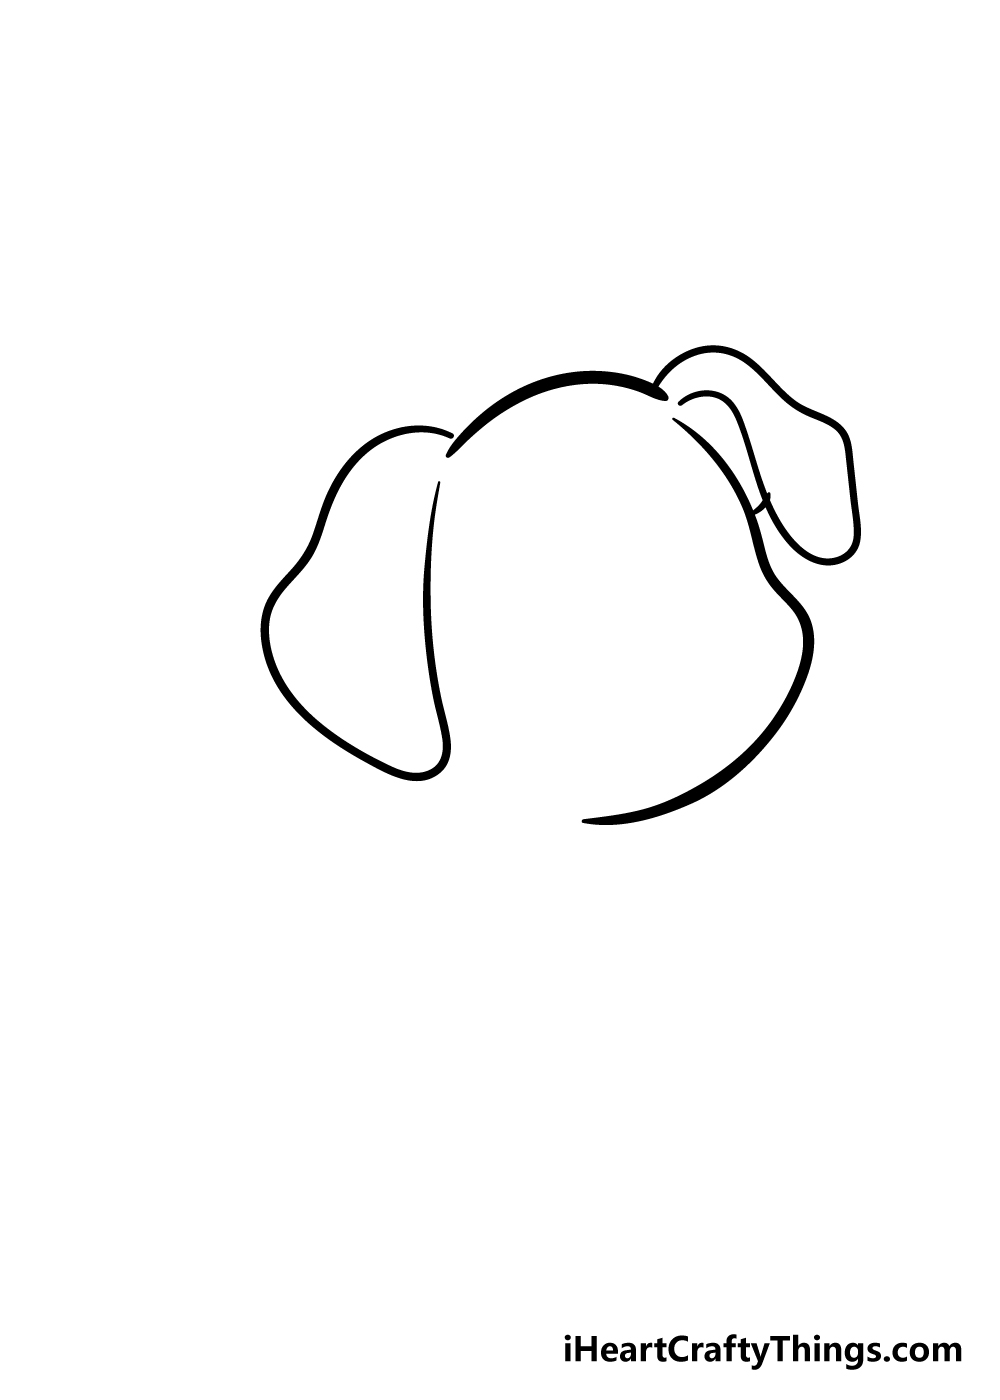 puppy drawing step 3